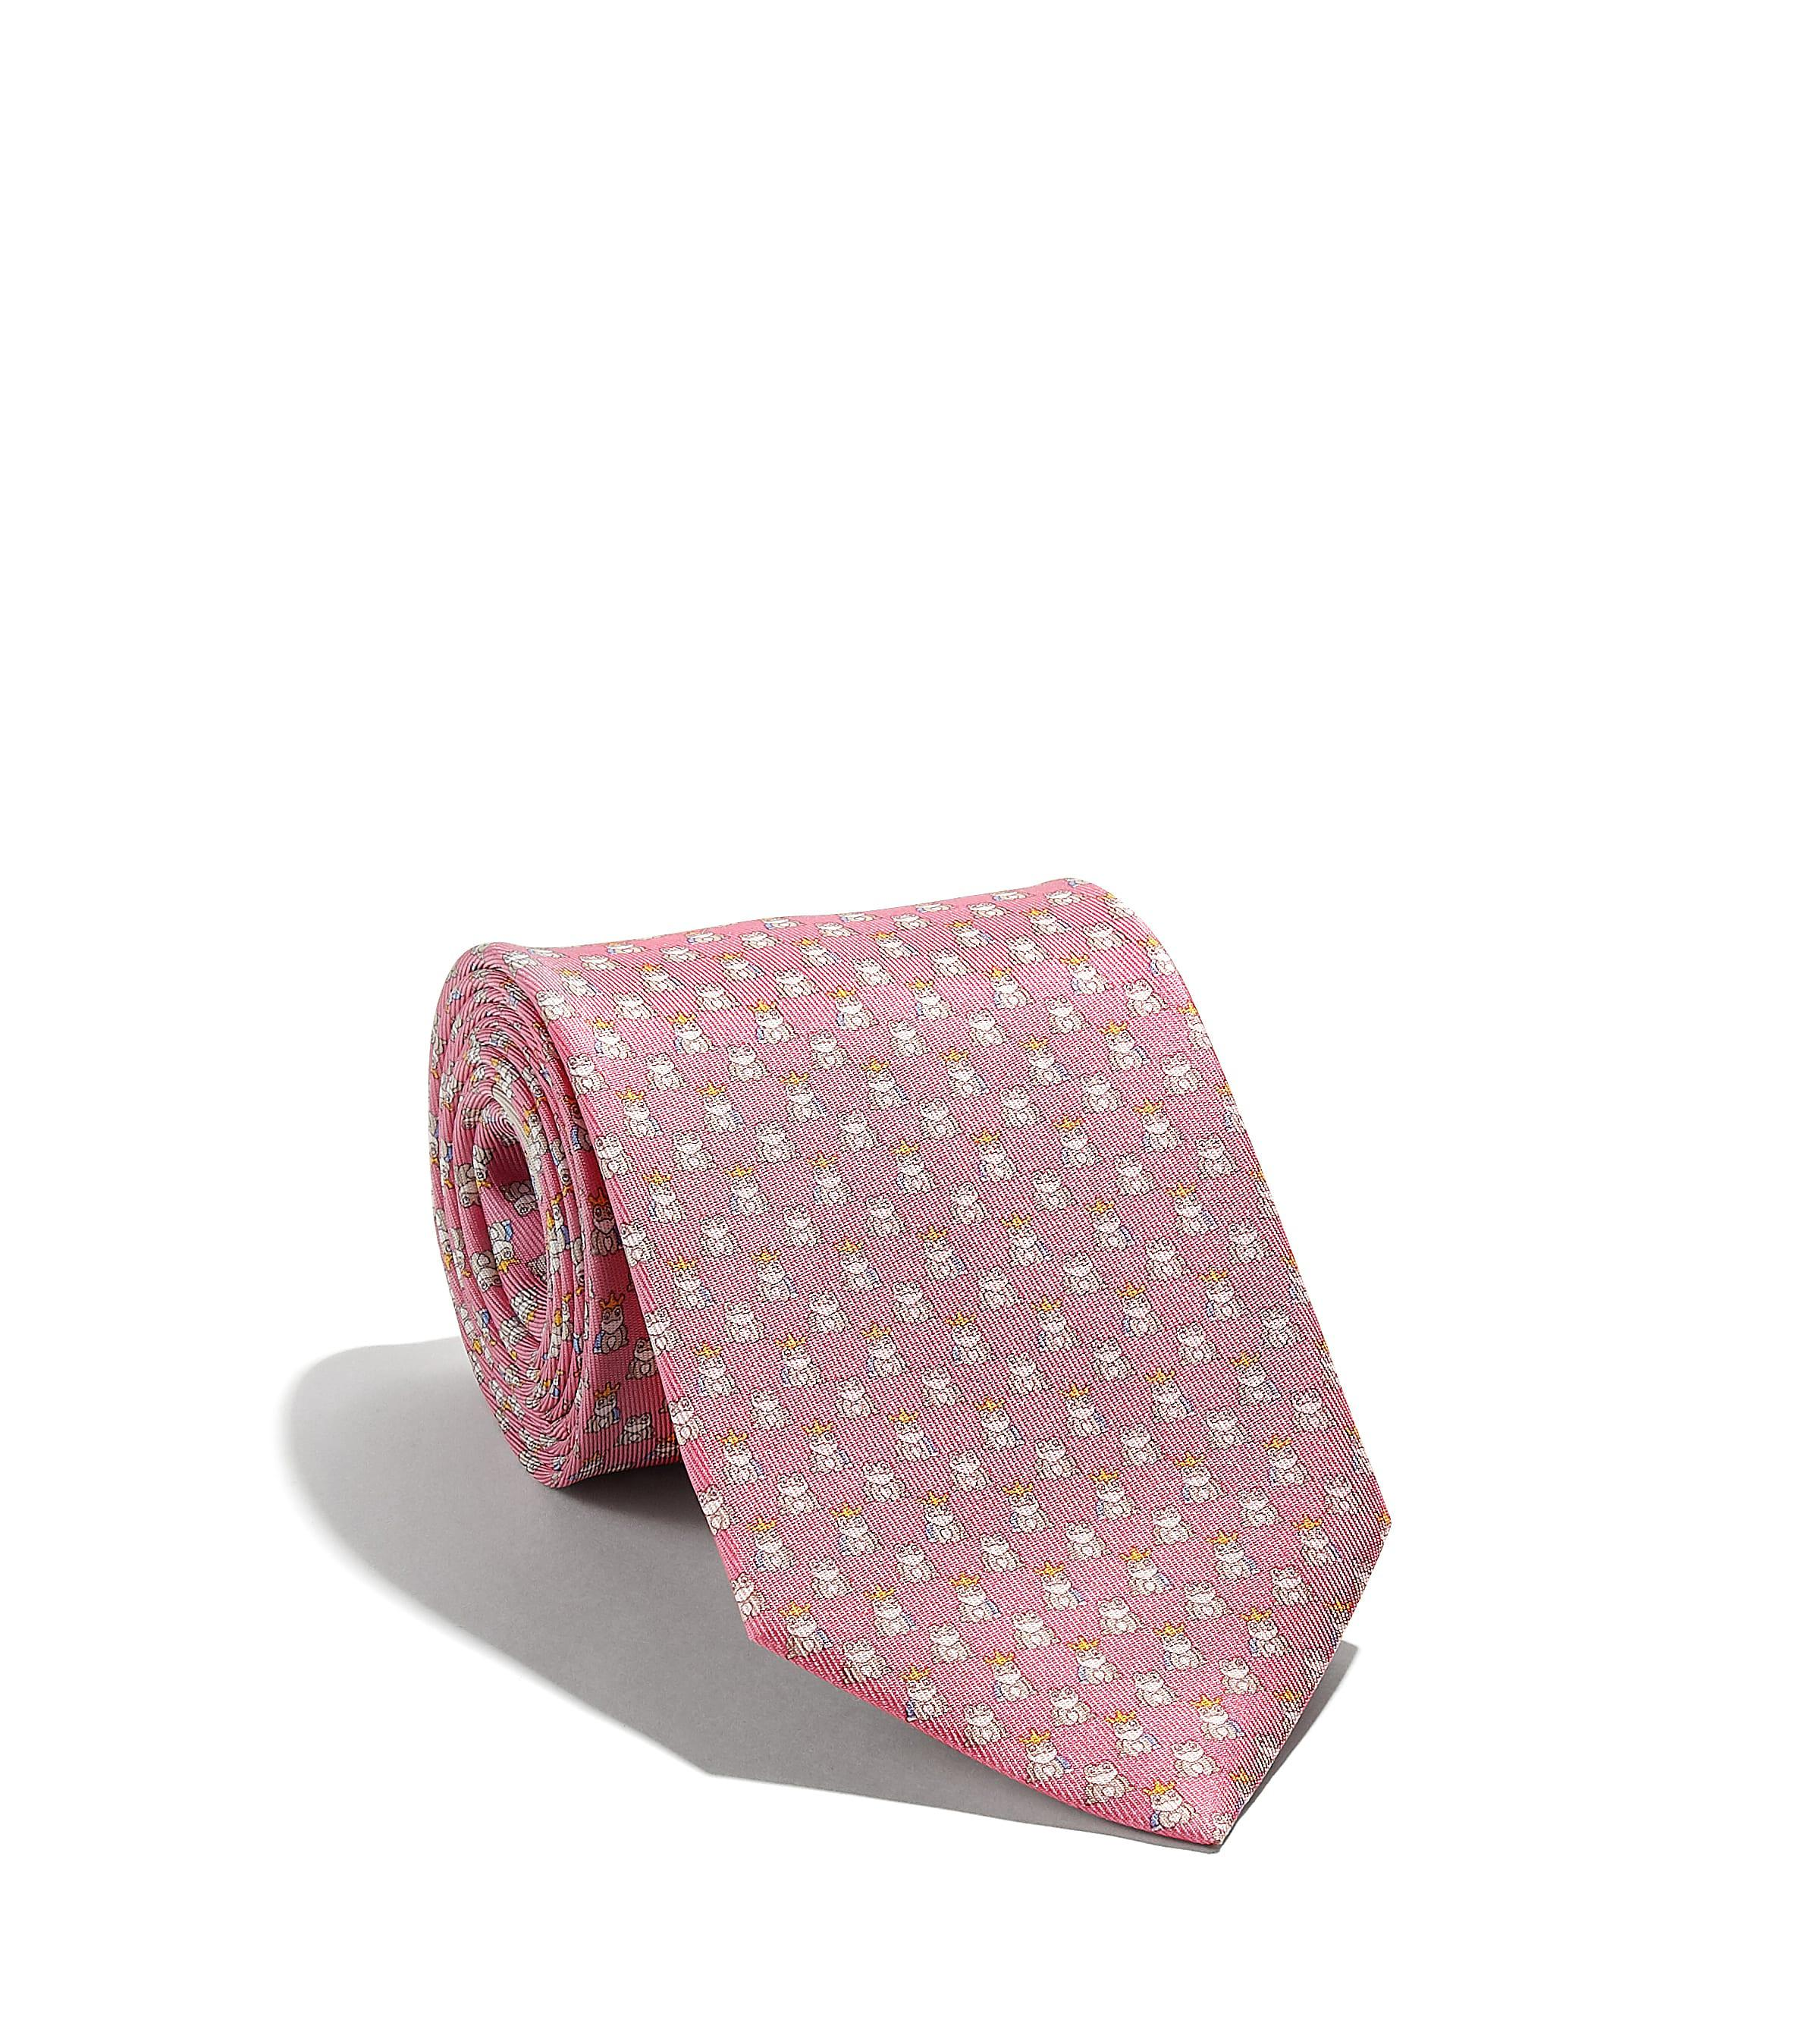 698cd2f6817e Ferragamo Frog-print Tie in Pink for Men - Lyst